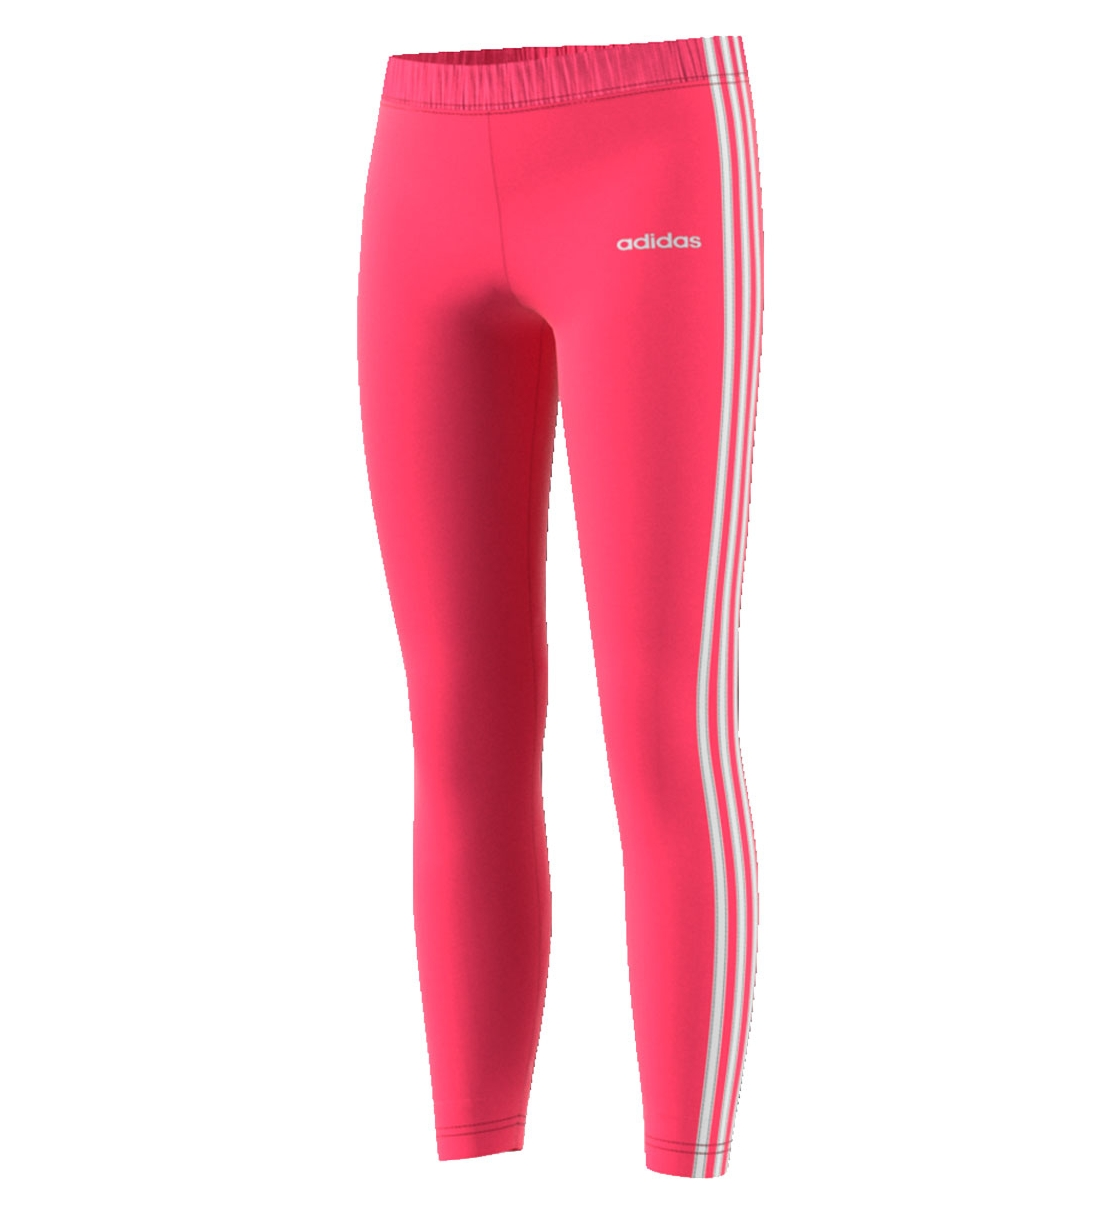 Adidas Fw19 Essentials 3S Tight